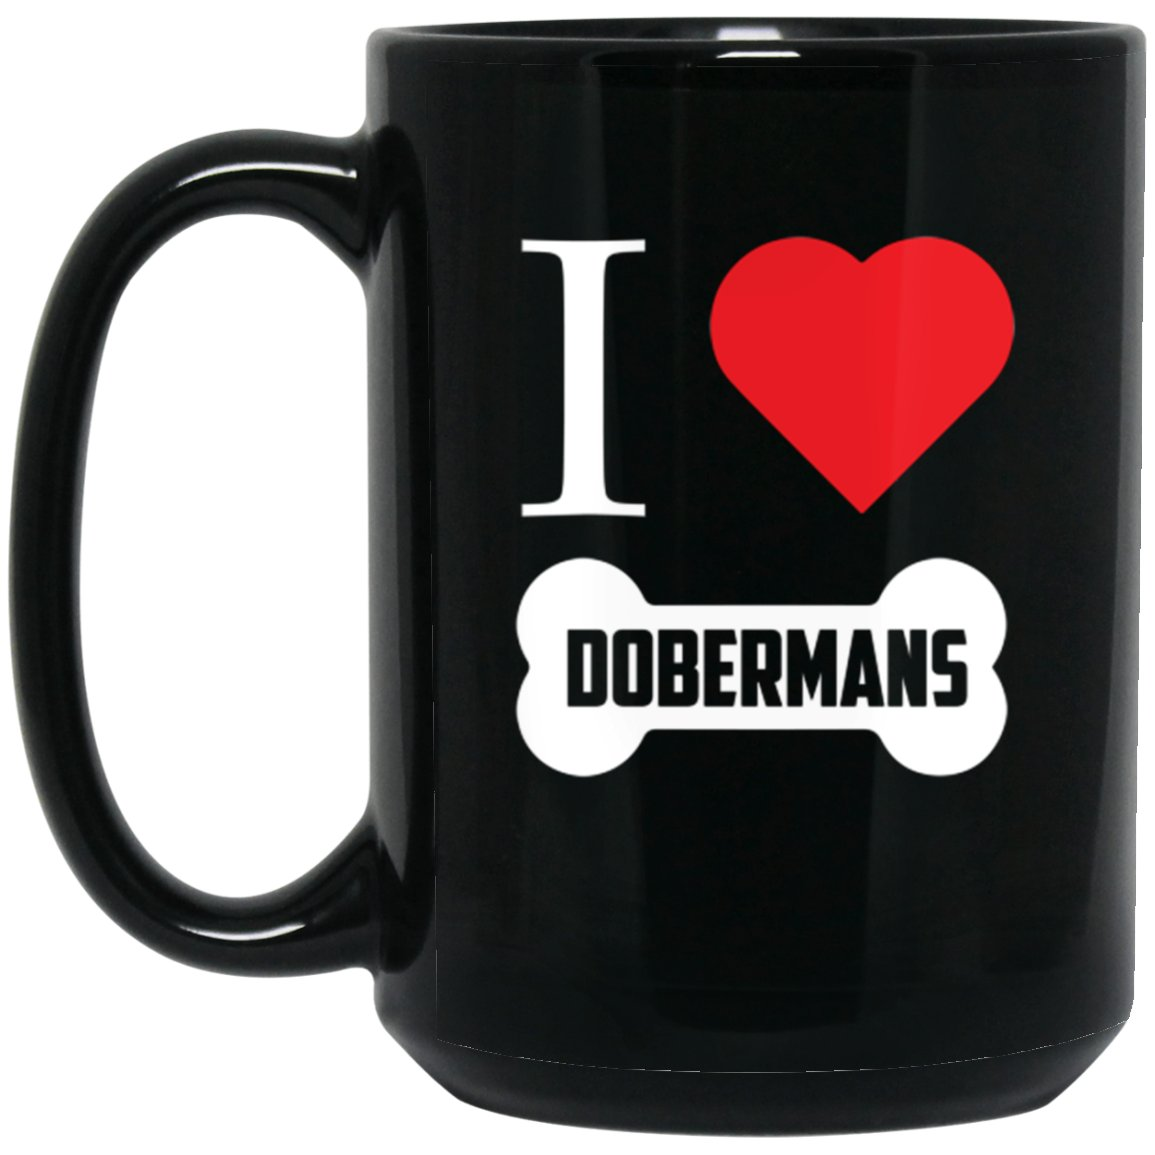 Doberman - I Heart Dobermans Bone Large Black Mug